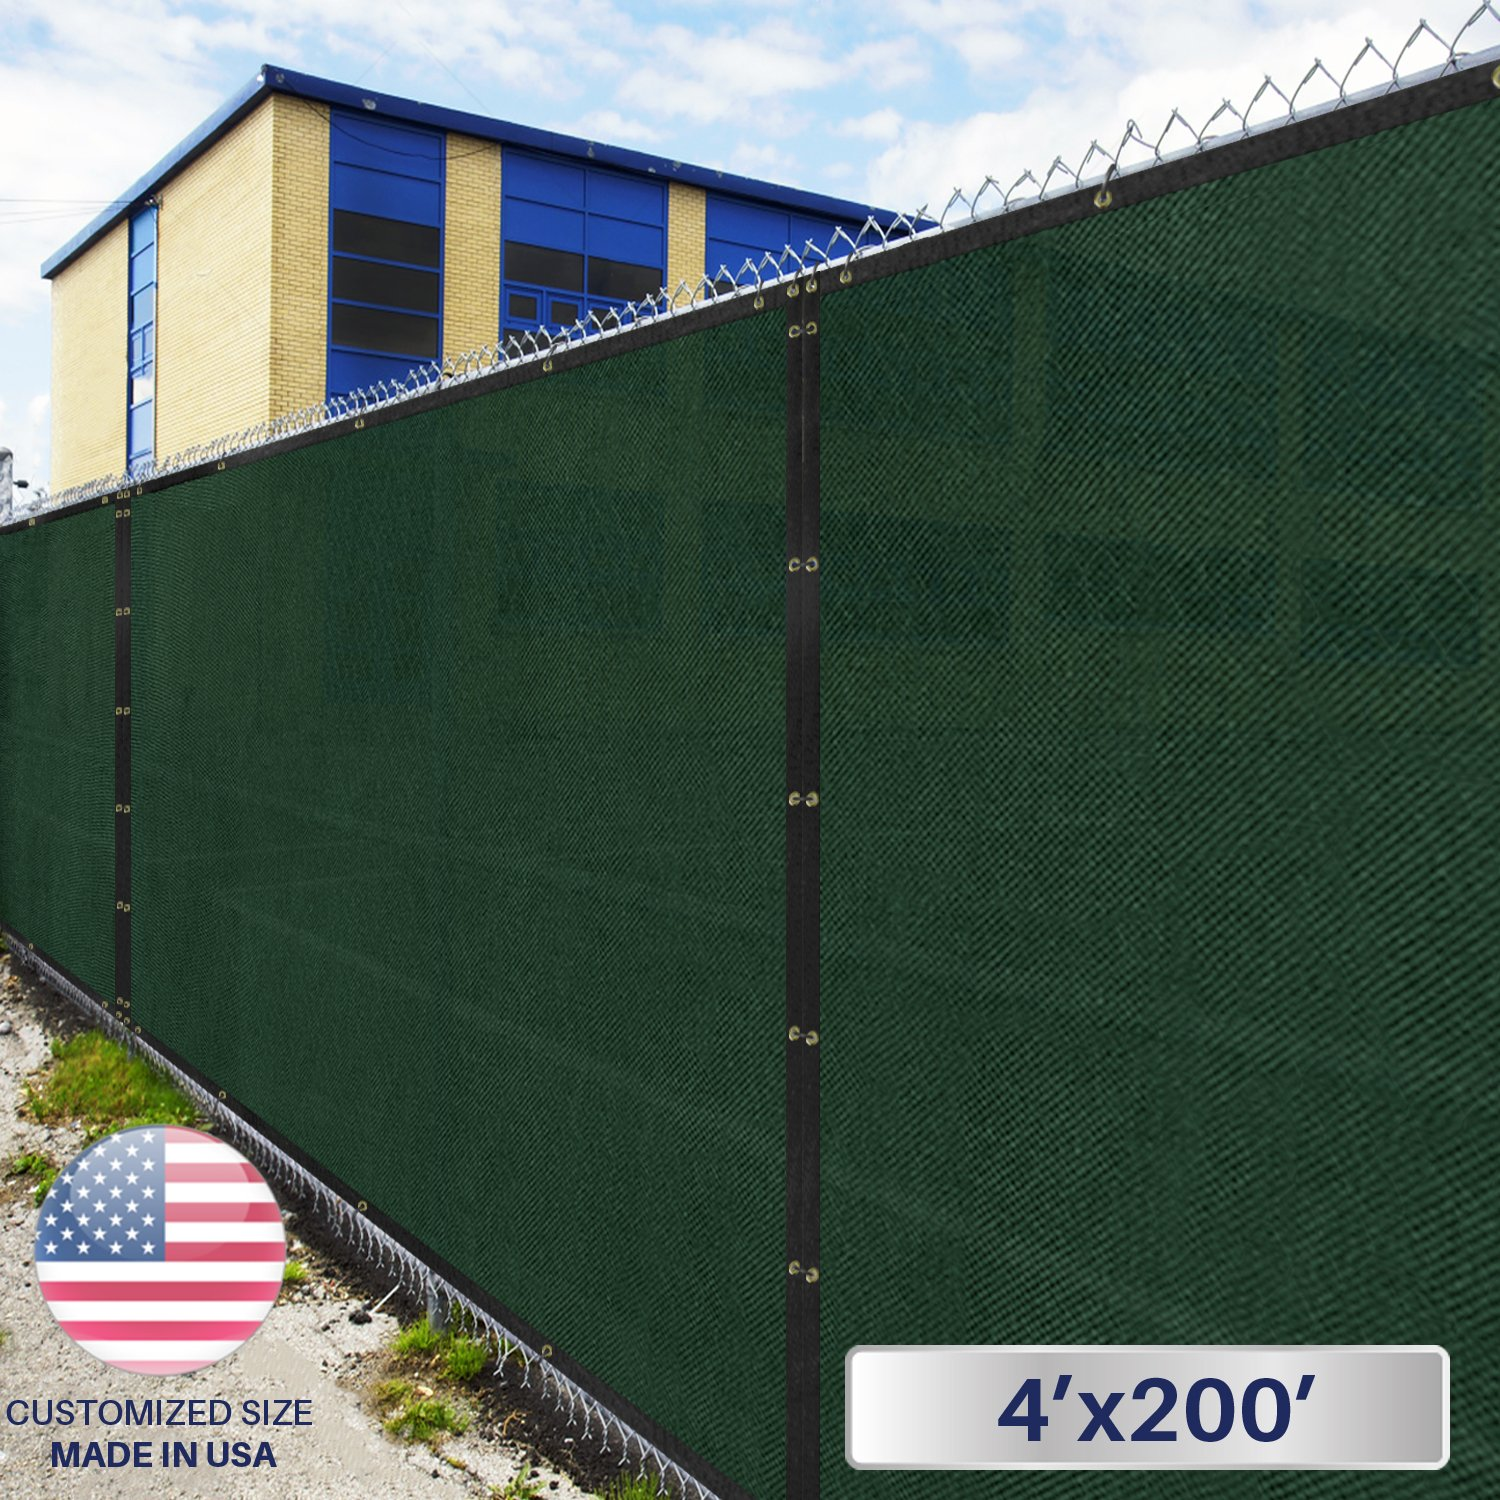 4' x 200' Privacy Fence Screen in Green with Brass Grommet 85% Blockage Windscreen Outdoor Mesh Fencing Cover Netting 150GSM Fabric - Custom Size